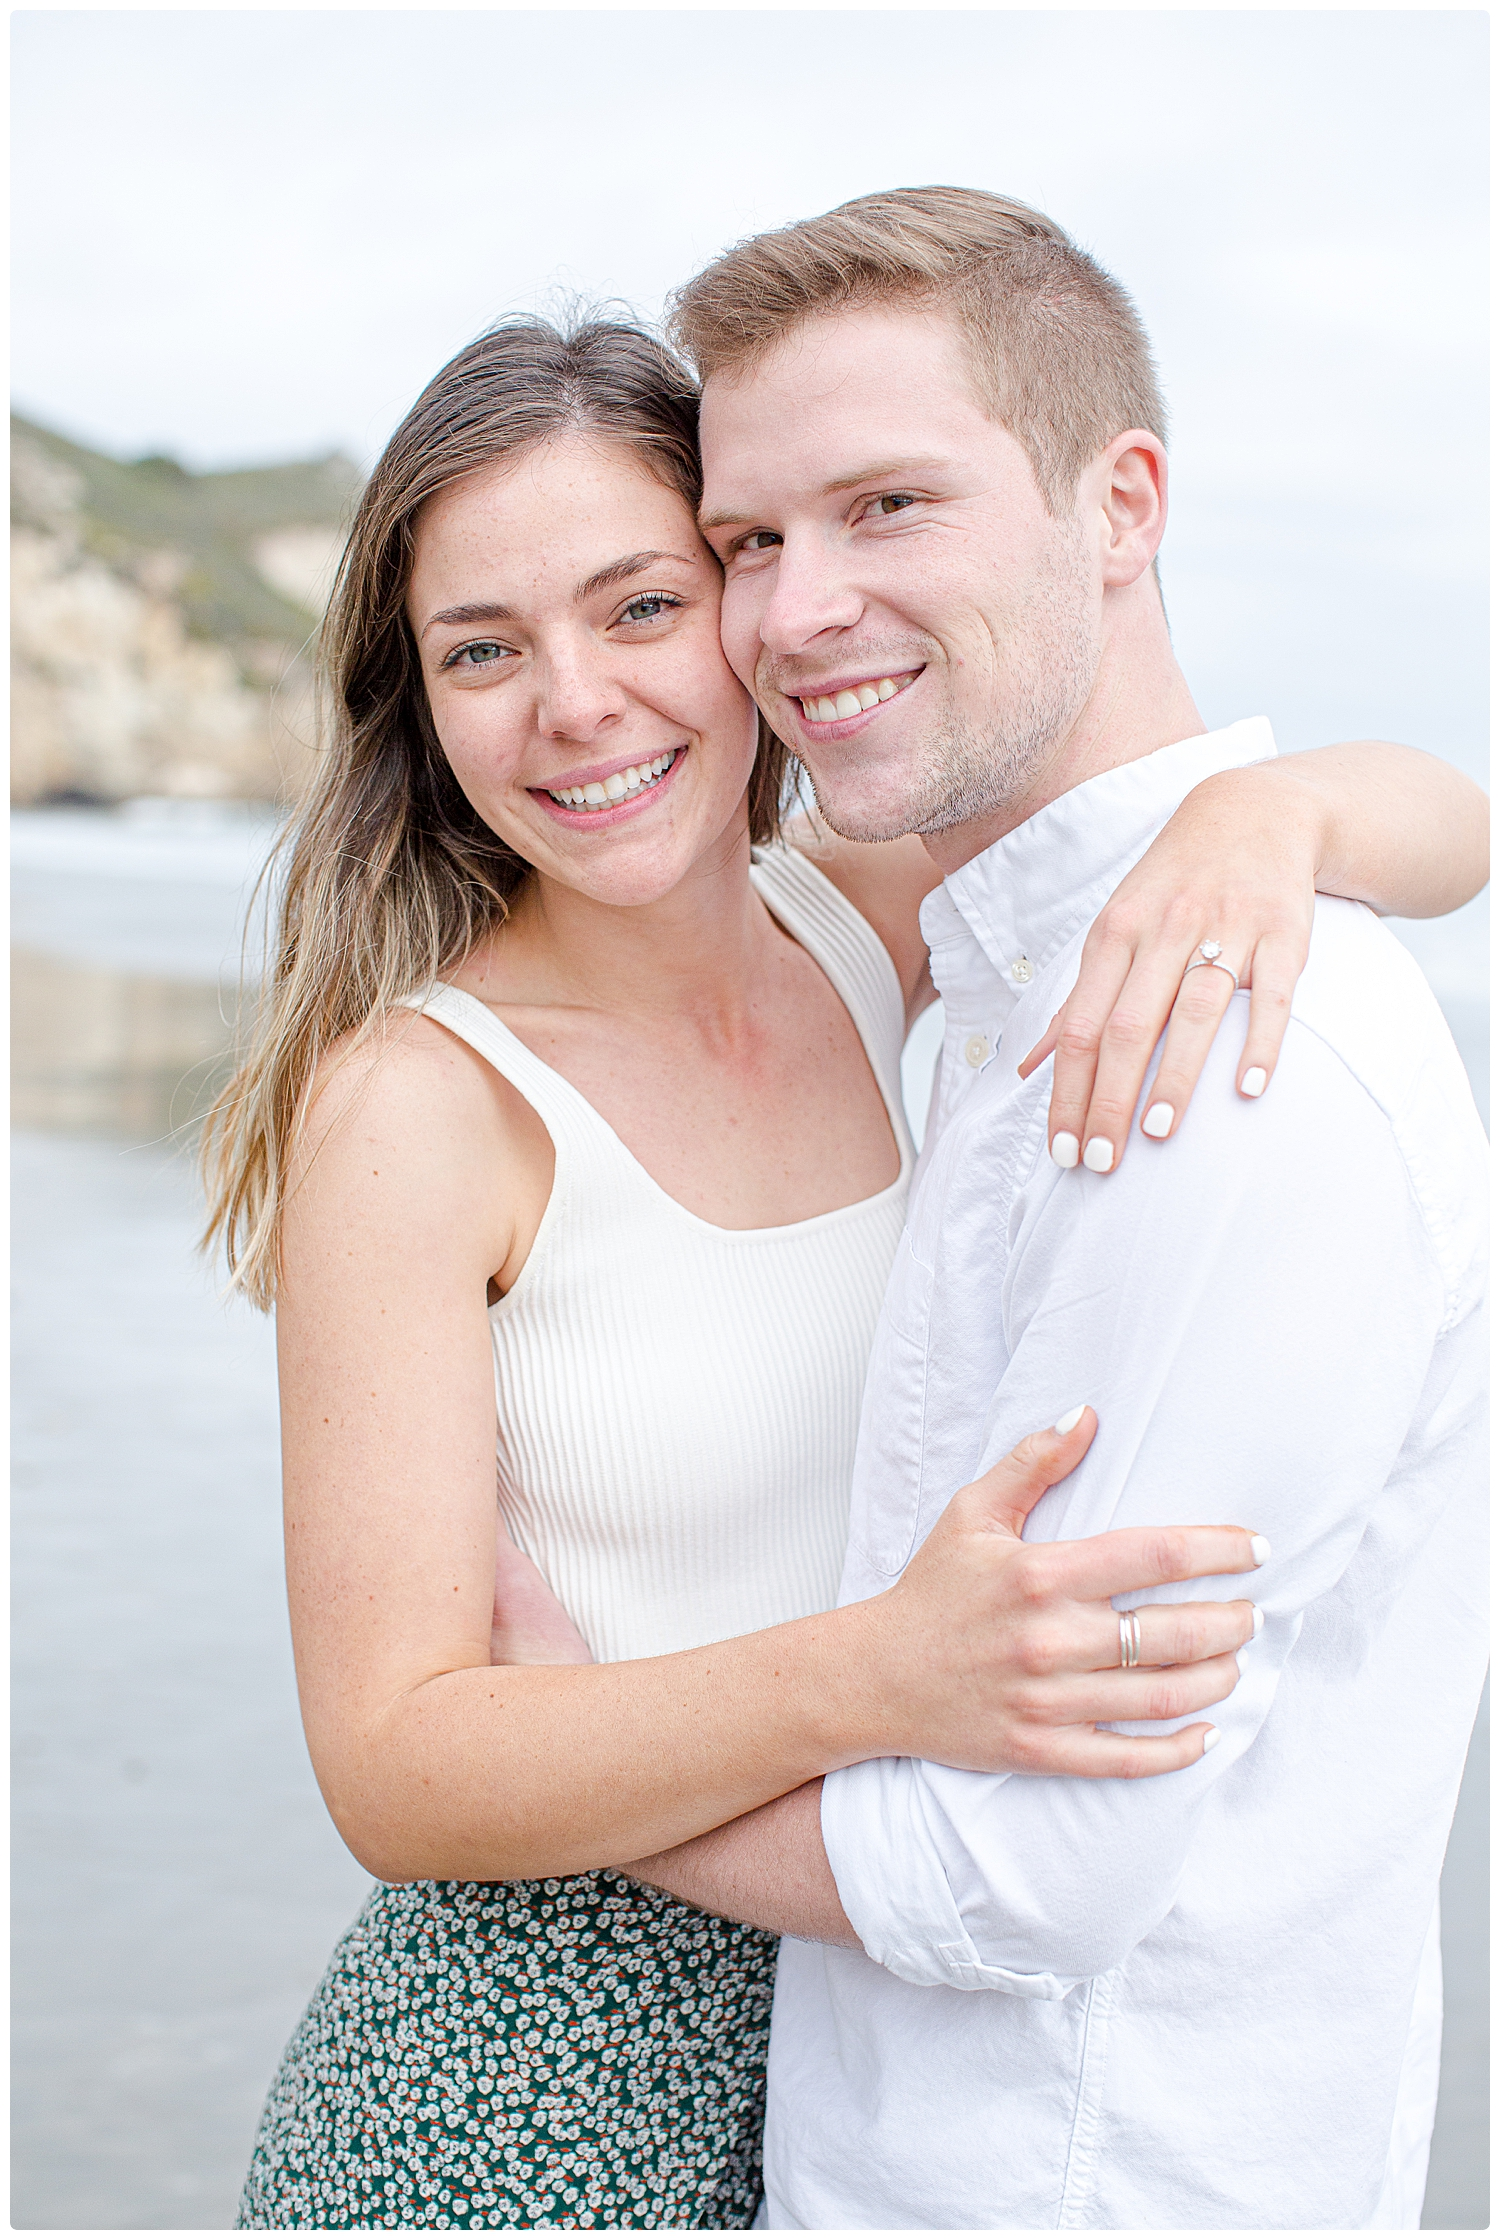 061919_EthanEmma_proposal_Renoda Campbell Photography-7144.jpg